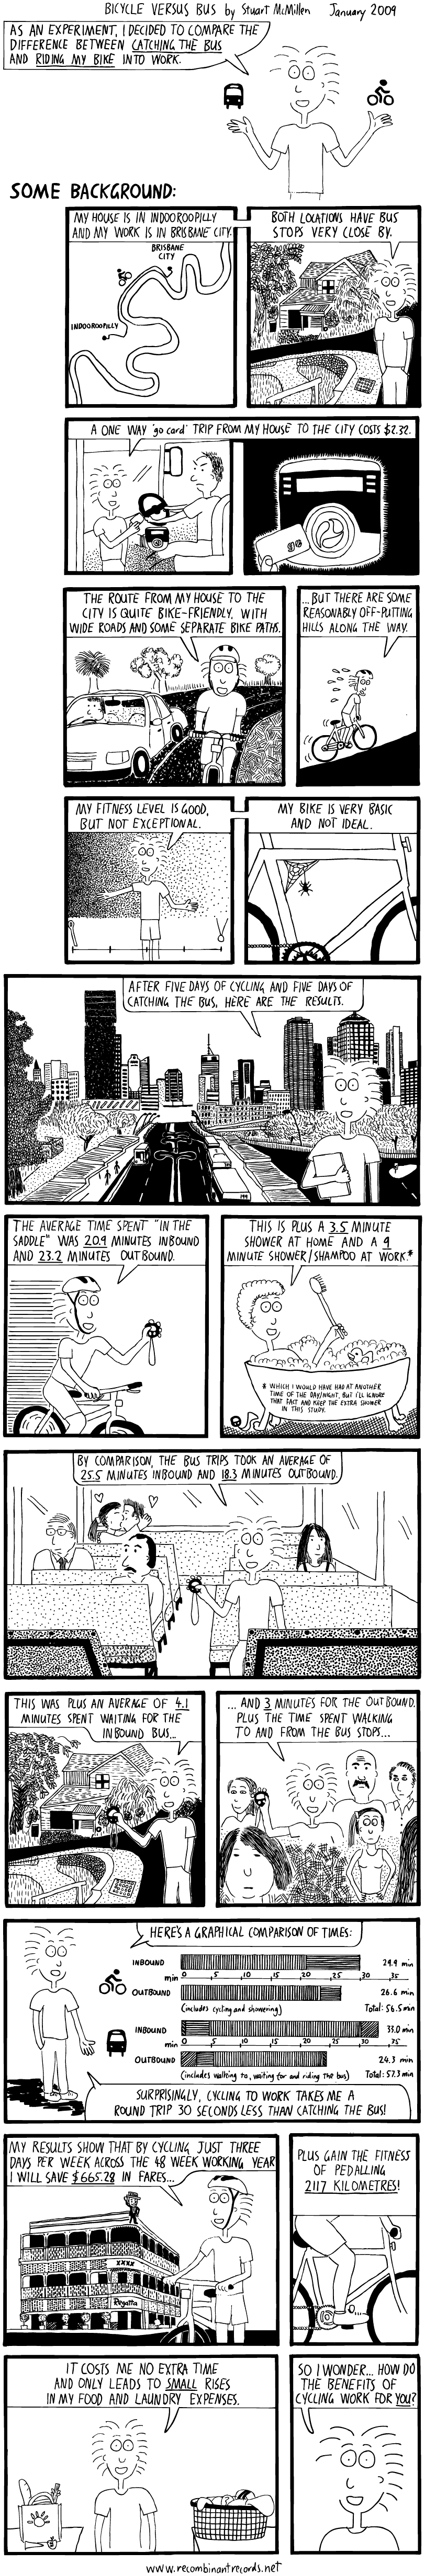 Brisbane Bicyle versus bus public transport cartoon